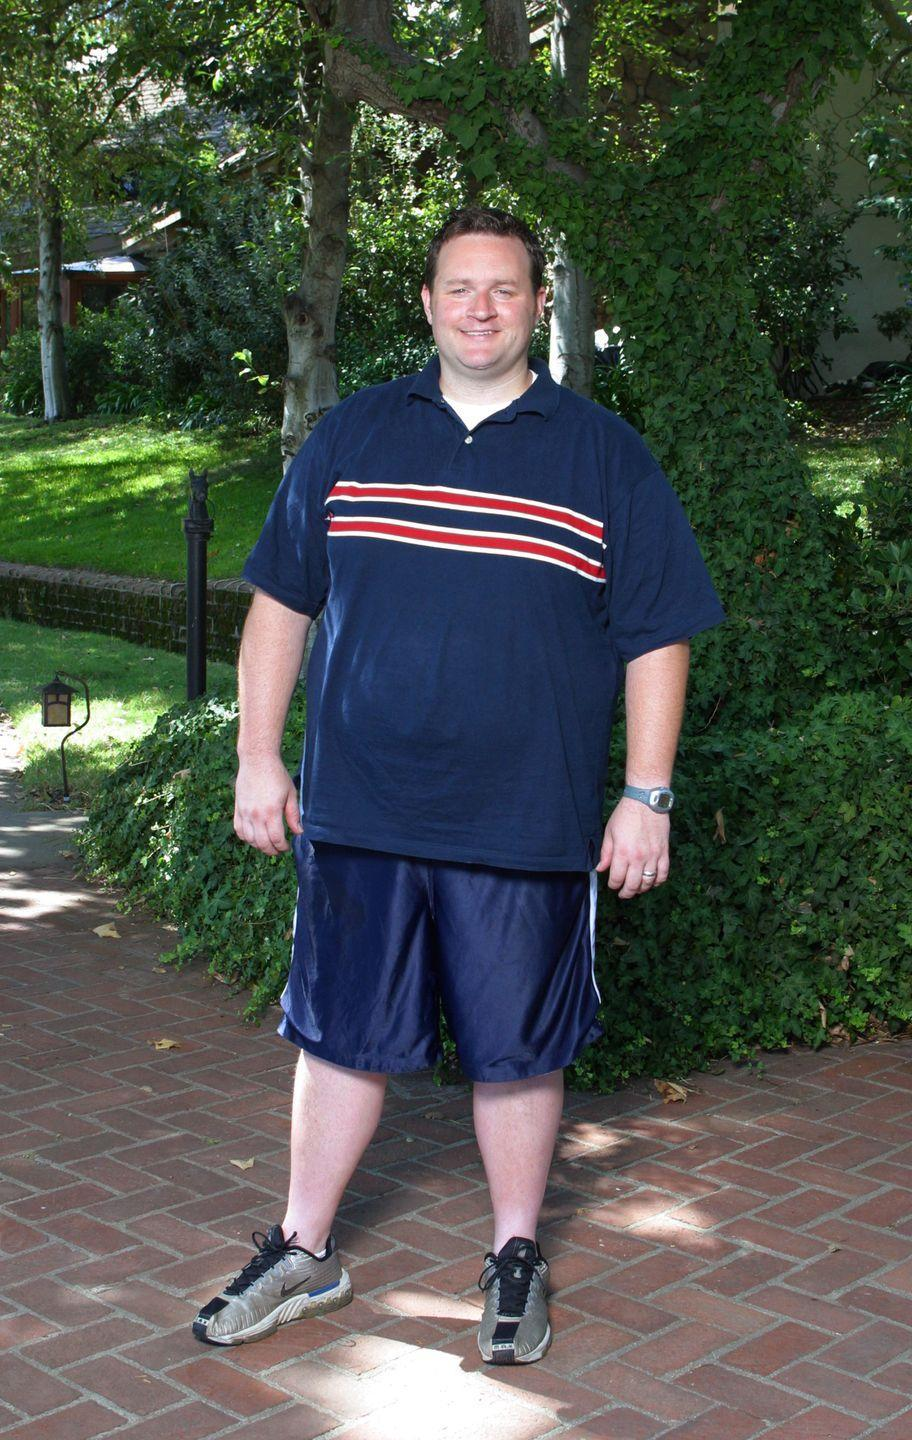 <p>Ryan was one of the original cast members of <em>The Biggest Loser </em>in season 1. He weighed 330 pounds at the beginning of the show.</p>